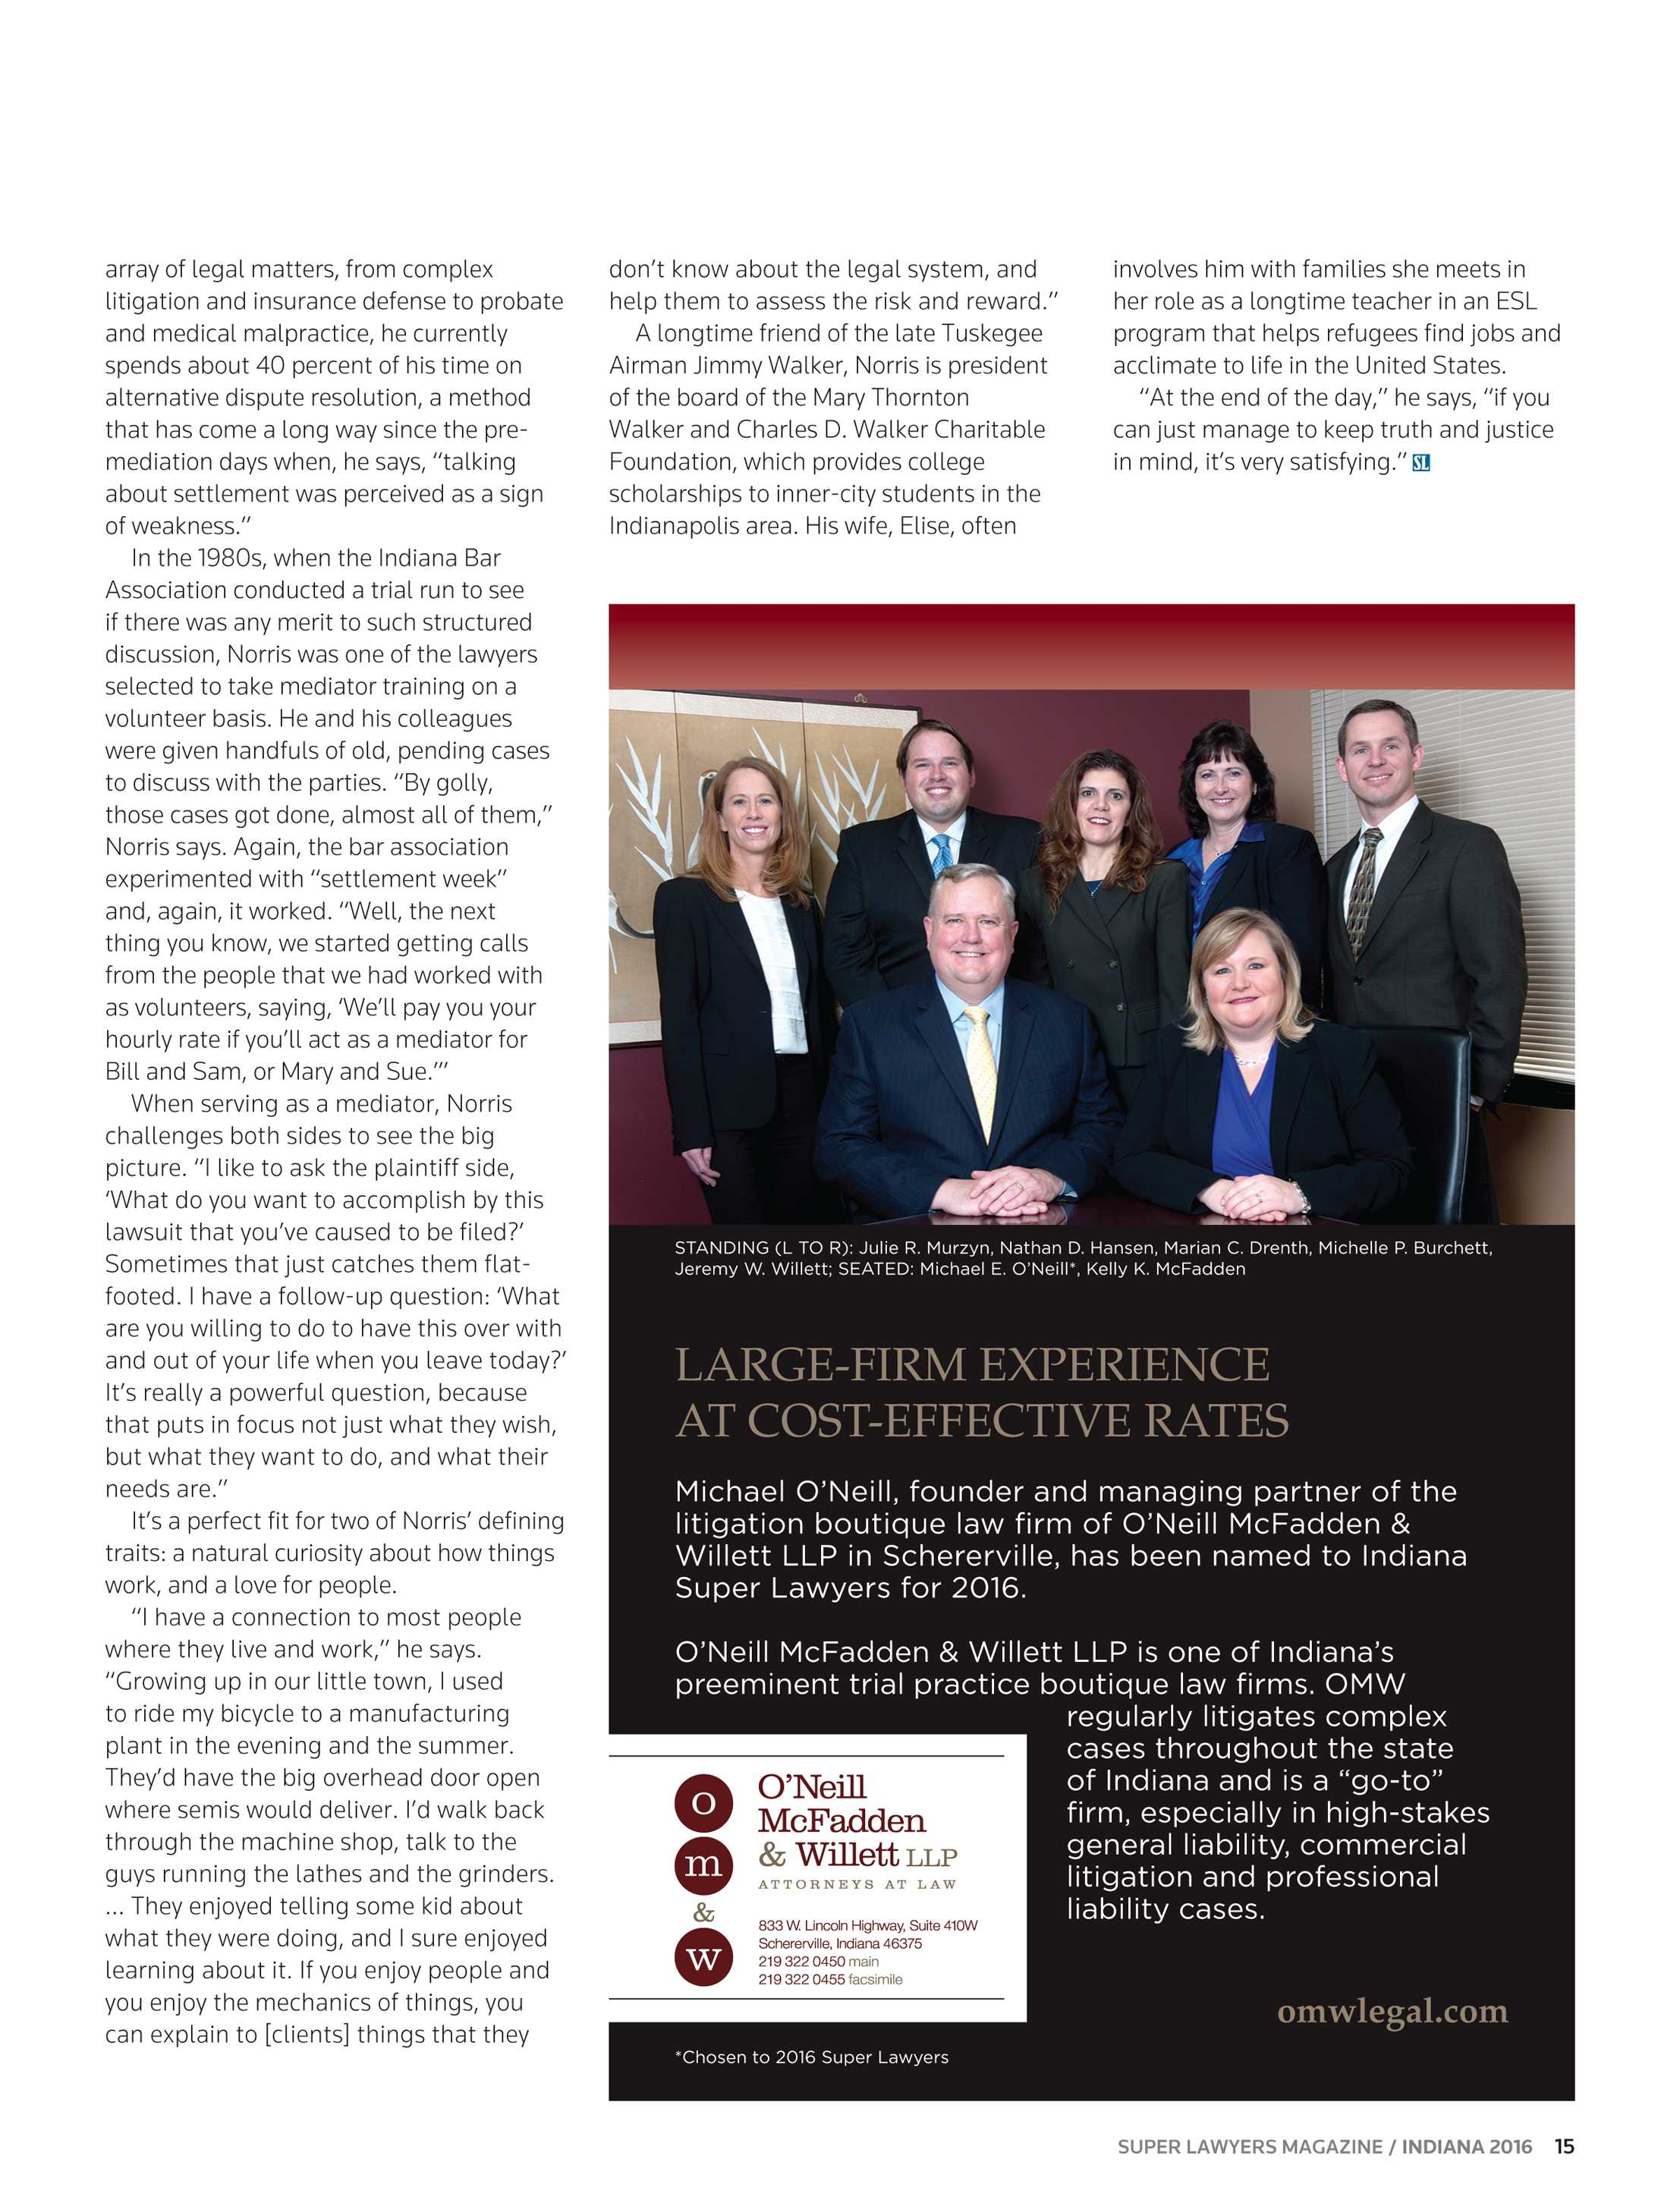 Super Lawyers - Indiana 2016 - page 15